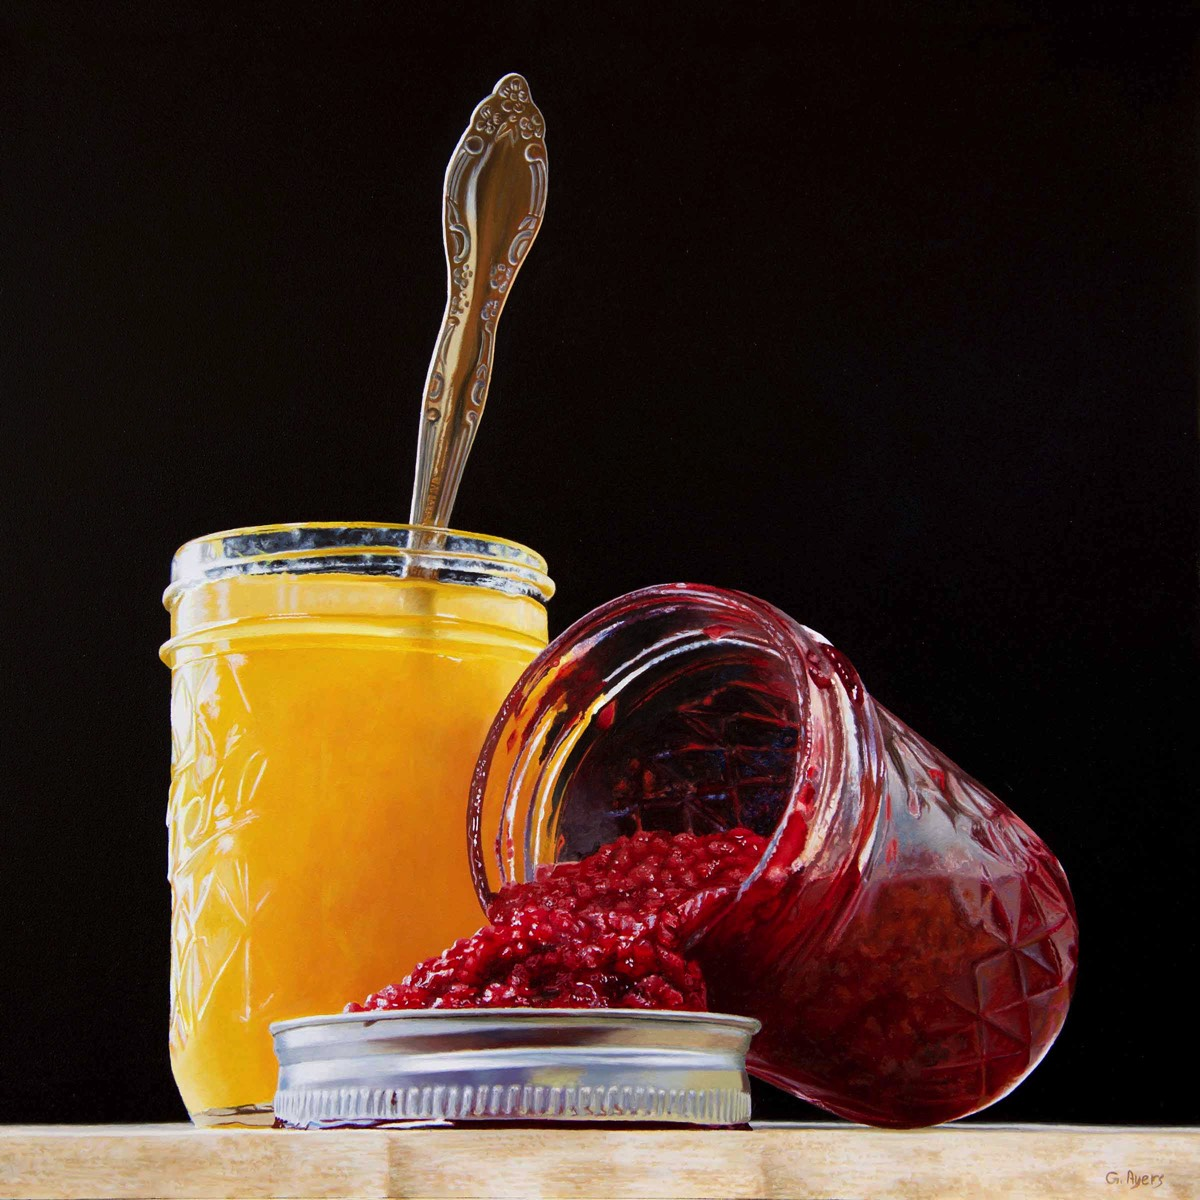 Jams - 12x12 - oil on panel - SOLD